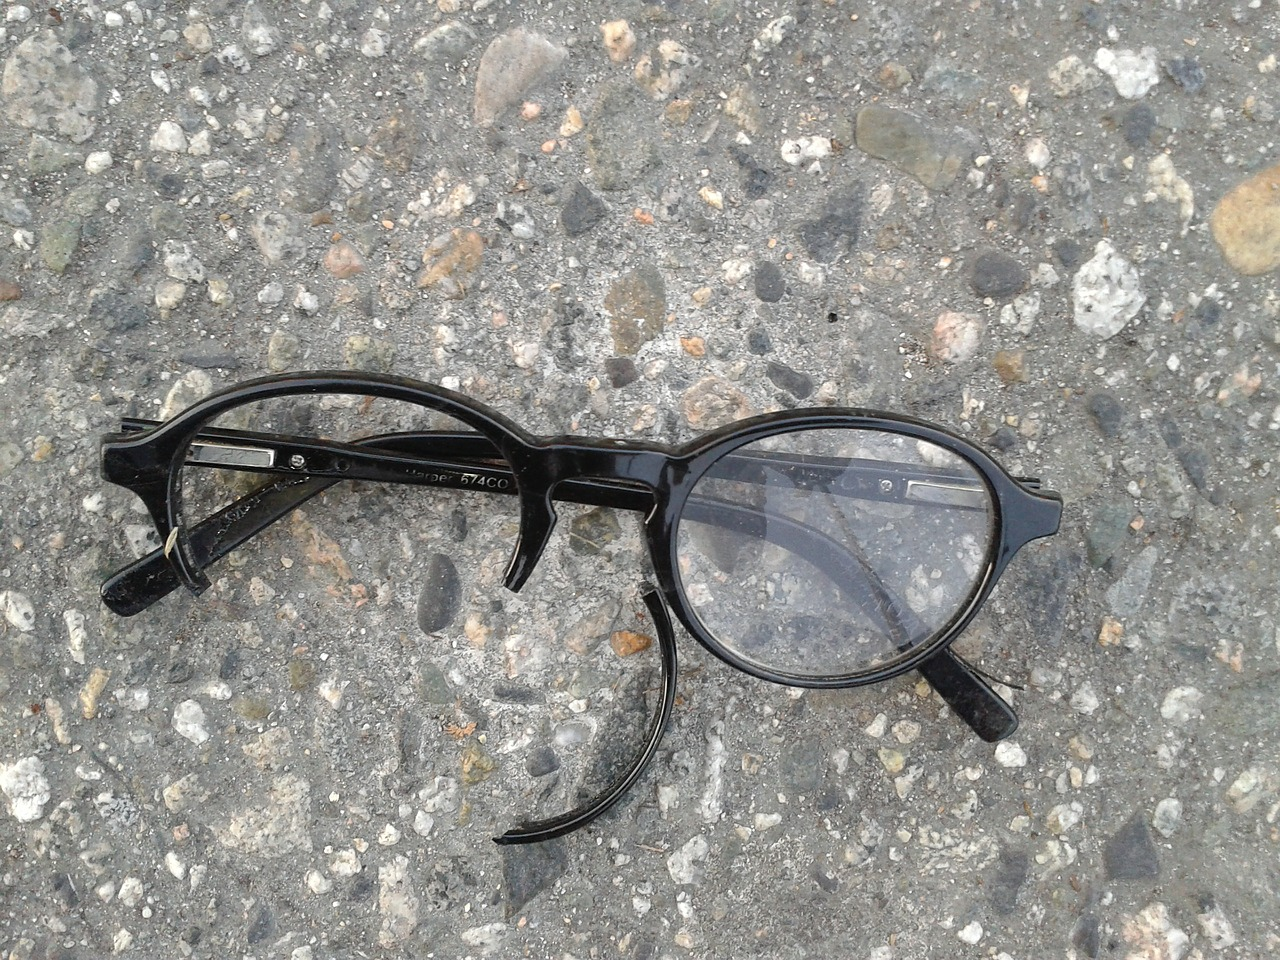 eyeglasses,broken glasses,sight,broken,pavement,crushed,sad,frames,emotions,free pictures, free photos, free images, royalty free, free illustrations, public domain